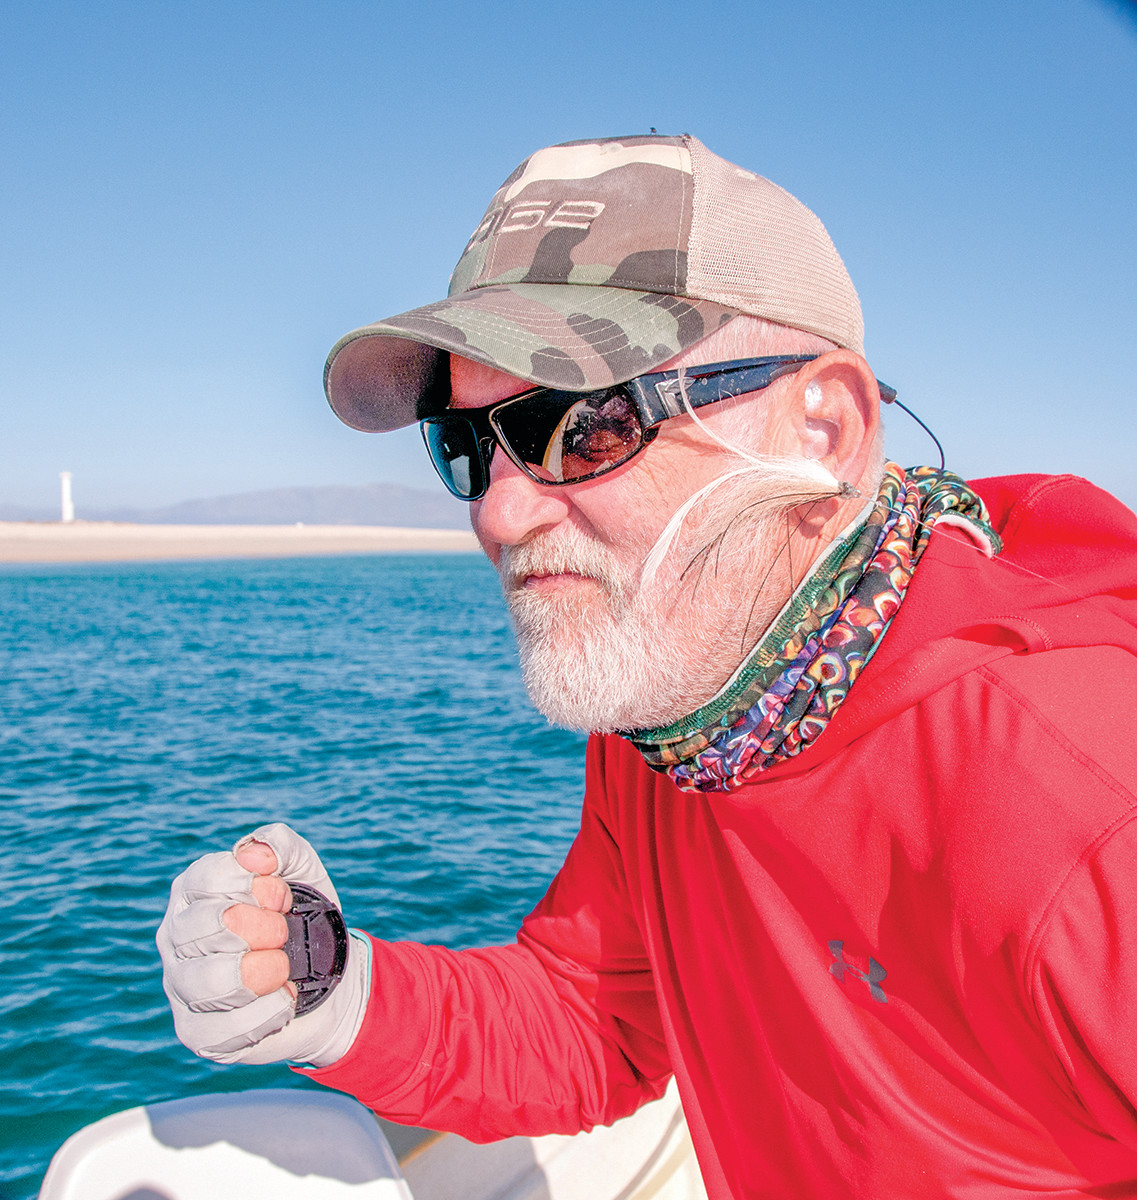 Horsley's enthusiasm for a tailing roosterfish landed this fly in his ear in Baja.